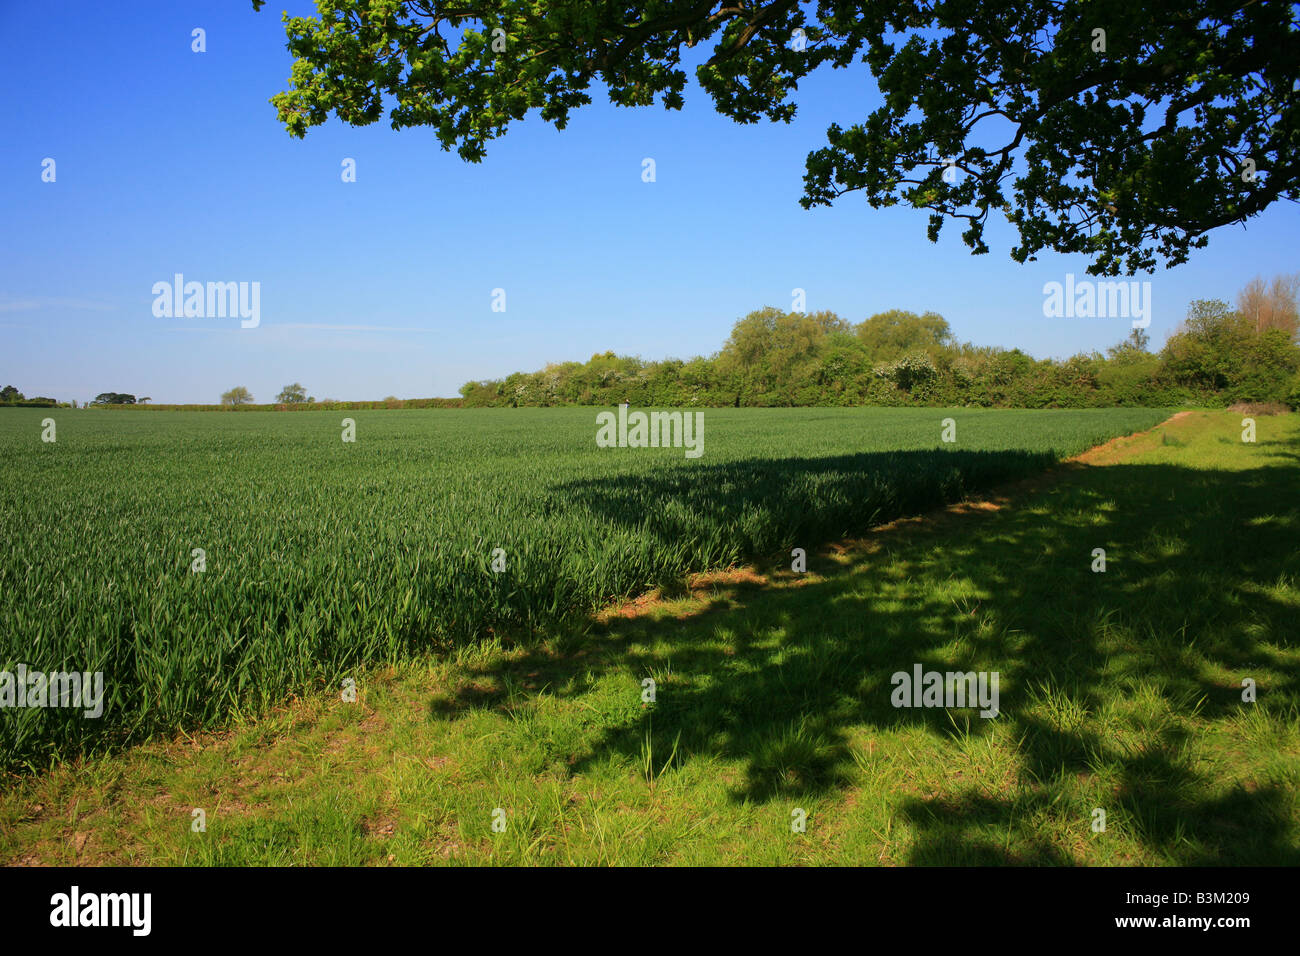 Kentish field in early summer with lower branches of oak tree and it's shaddow, Brabourne Lees, Ashford, Kent, - Stock Image